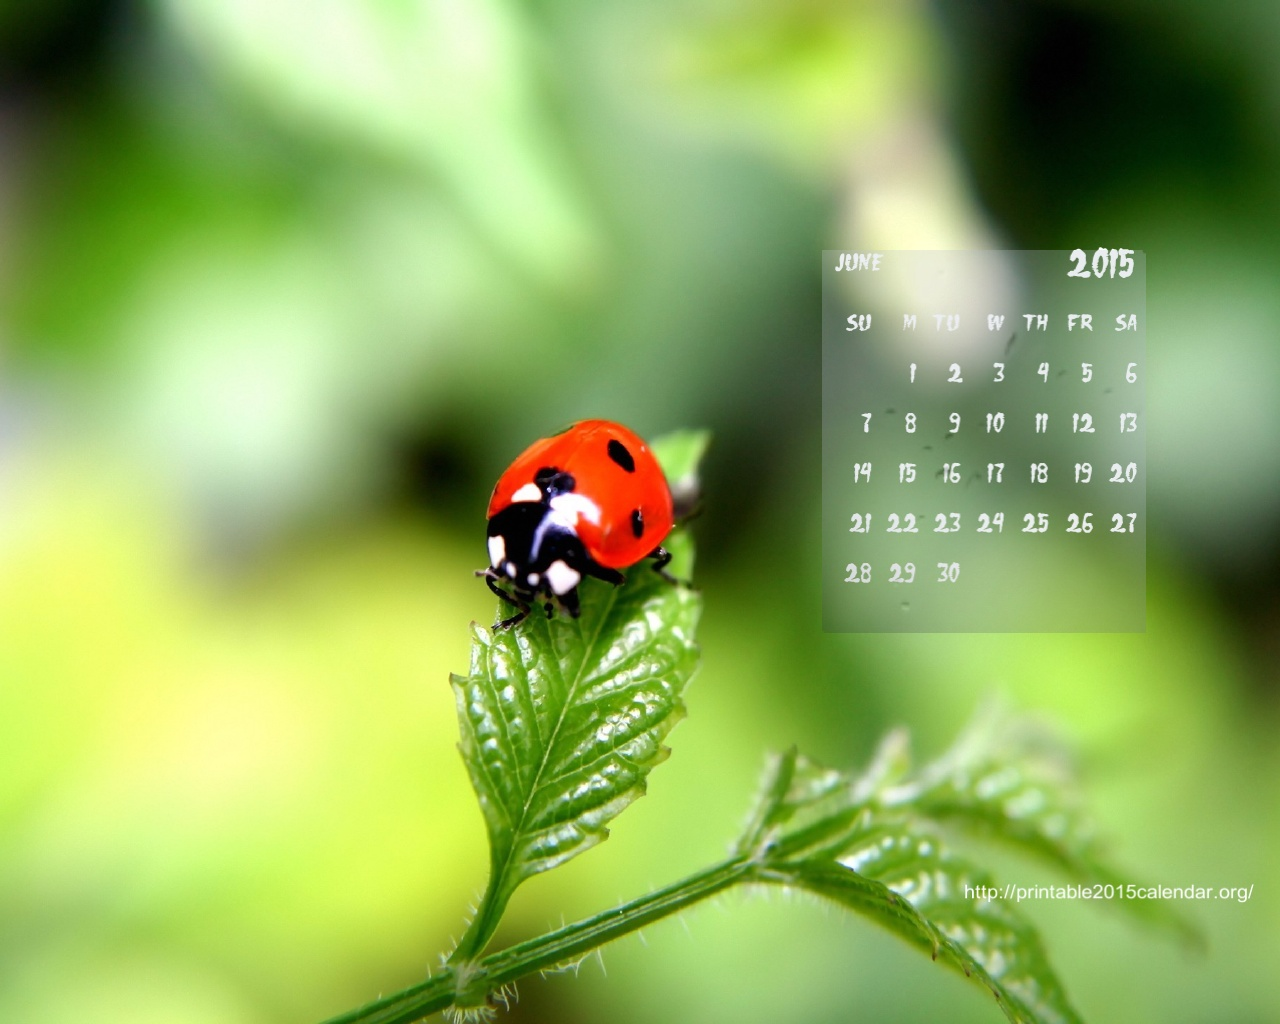 2015 Calendar HD Wallpaper 2015 Calendar 1280x1024